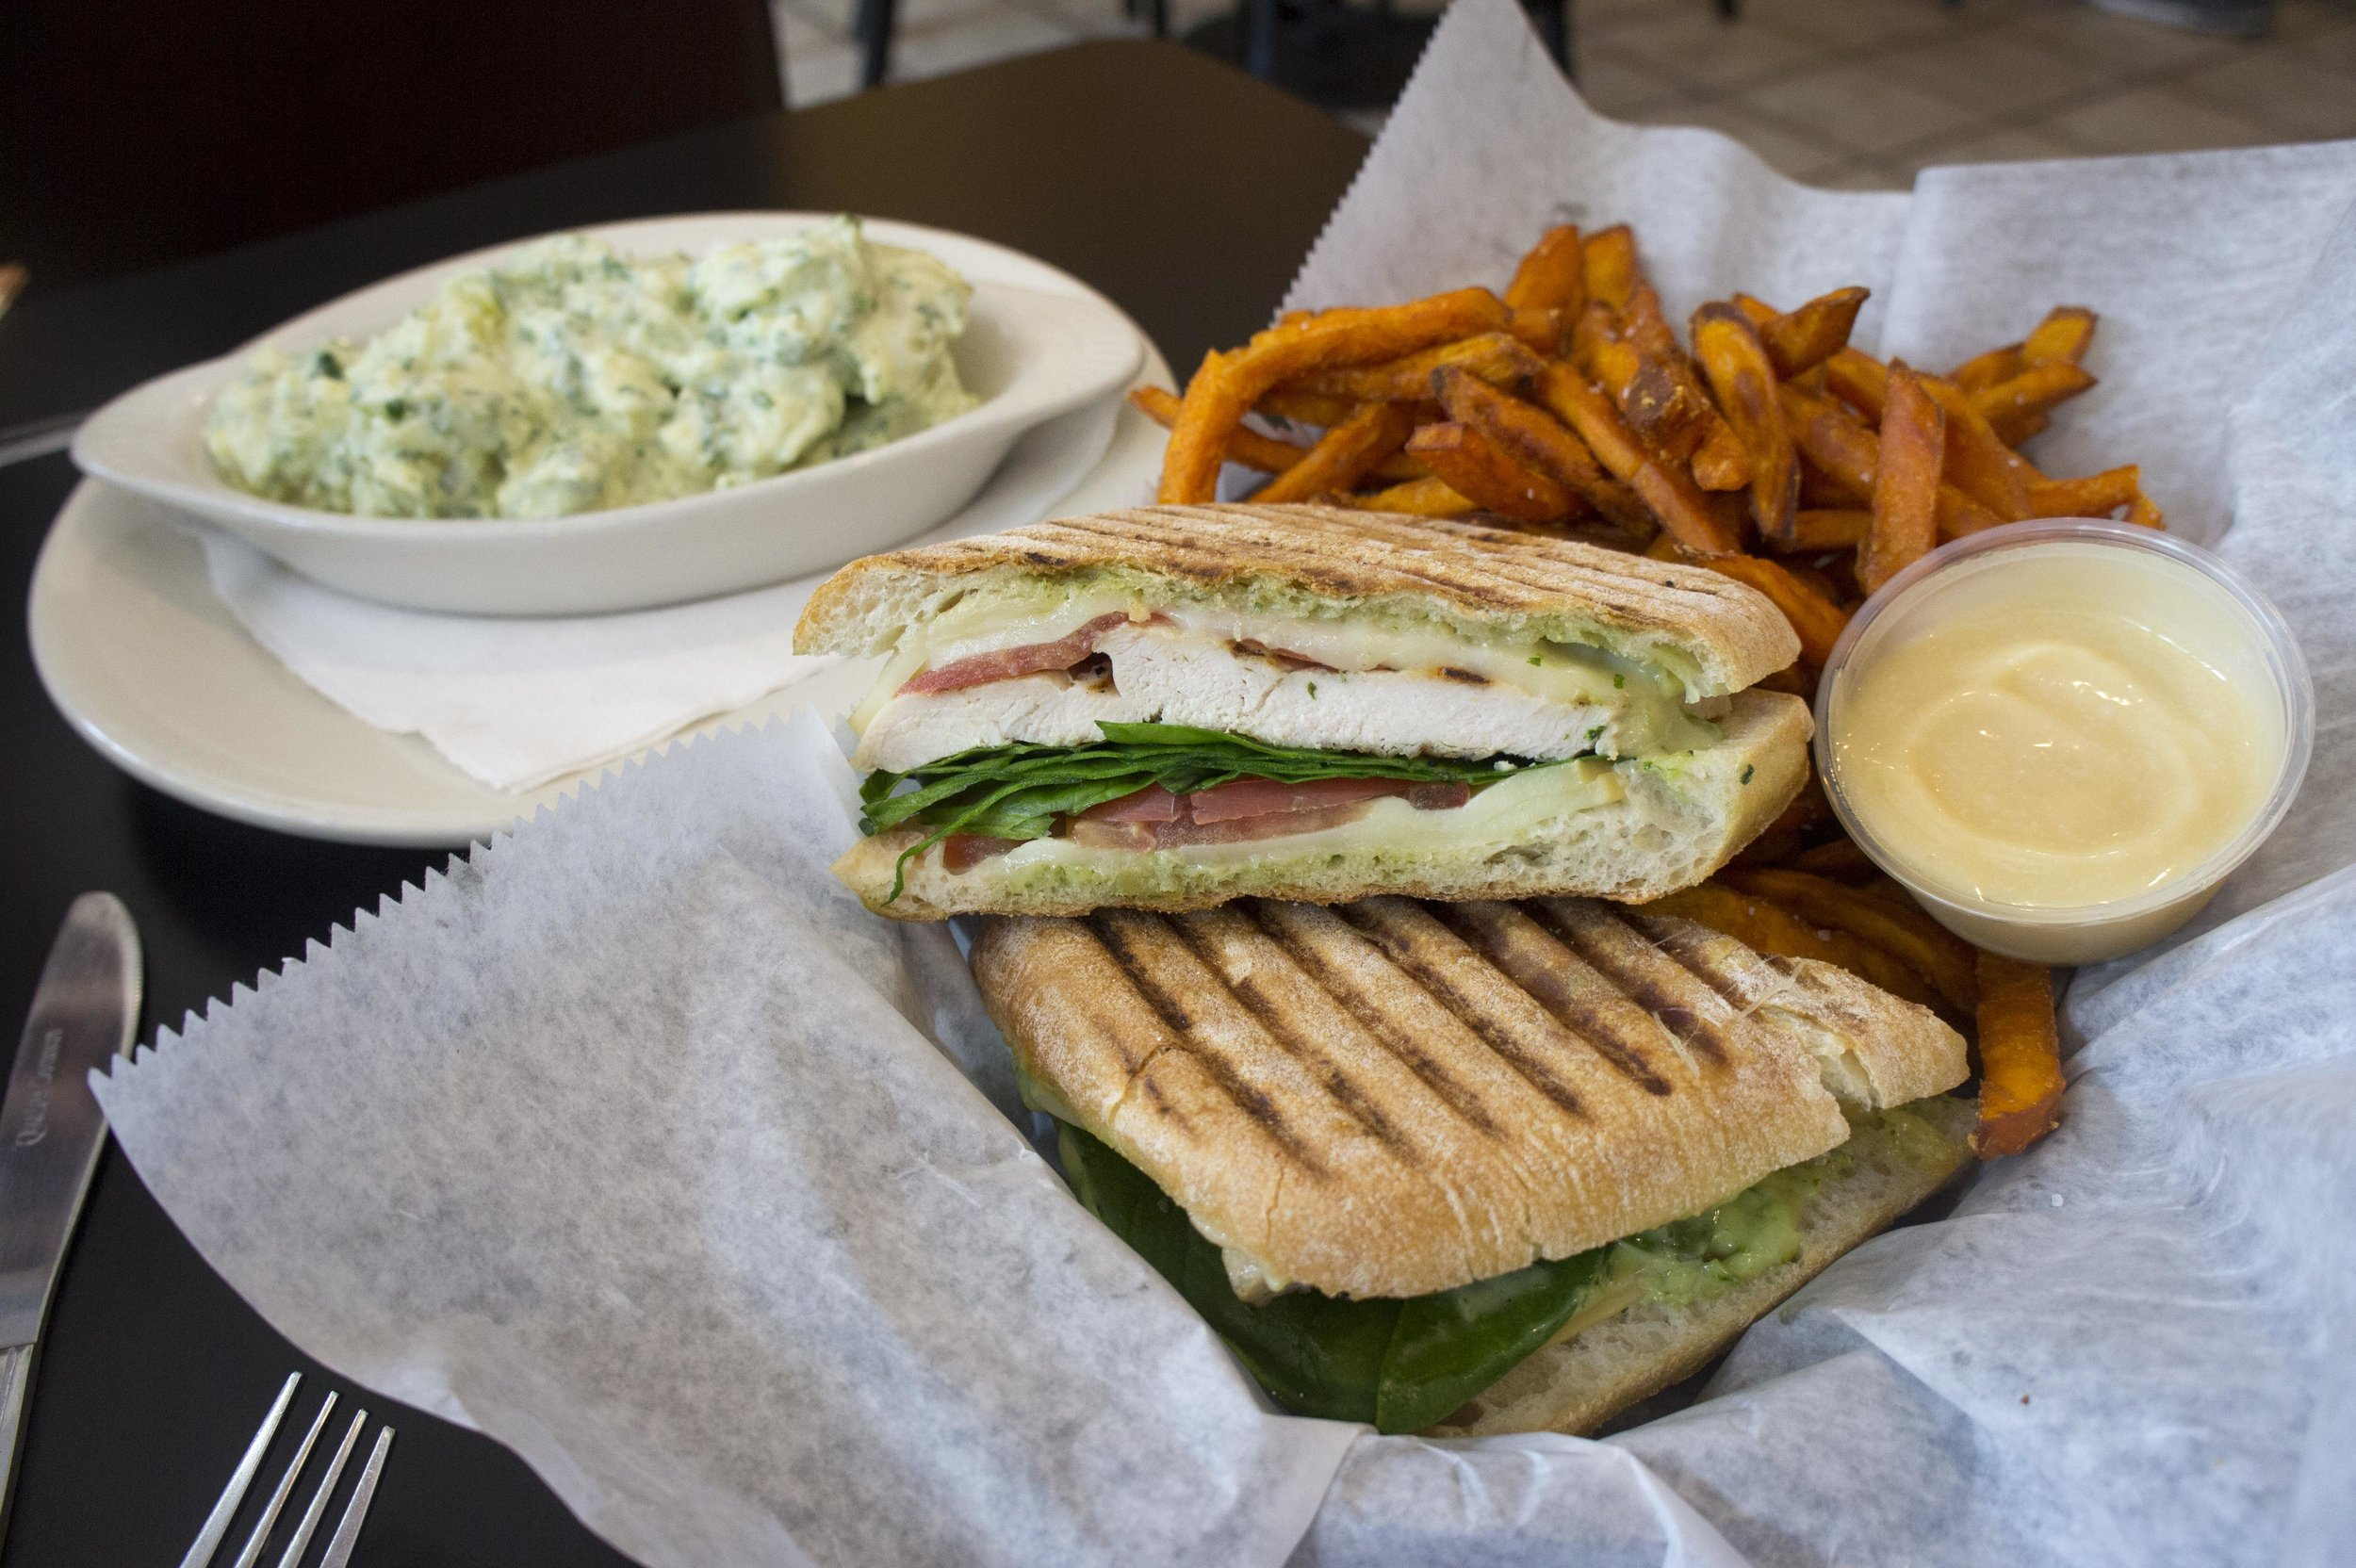 The Mobster Panini ($8.95), with grilled chicken breast, smoked mozzarella, fresh baby spinach, tomato and basil pesto mayo, offers a crunchy bite, with a soft and juicy center.